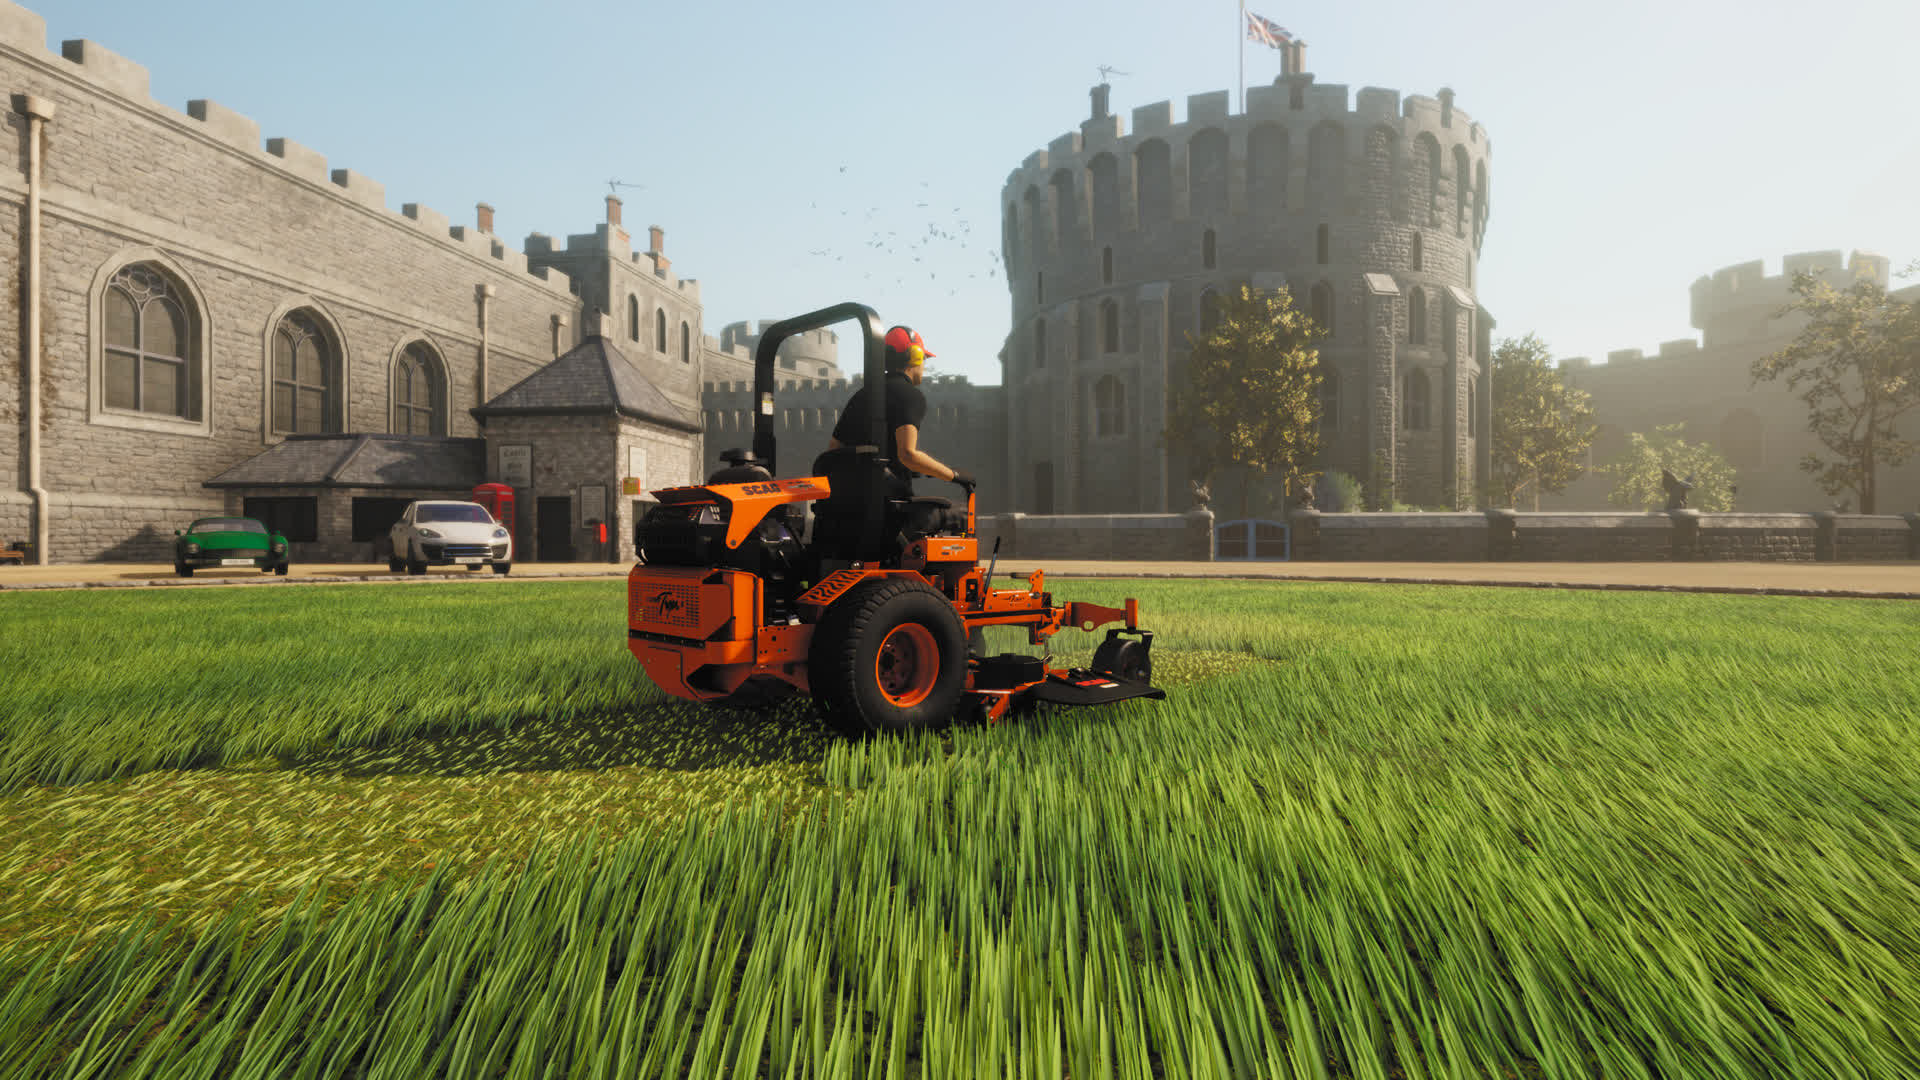 Lawn Mowing Simulator is for those that take grass cutting seriously